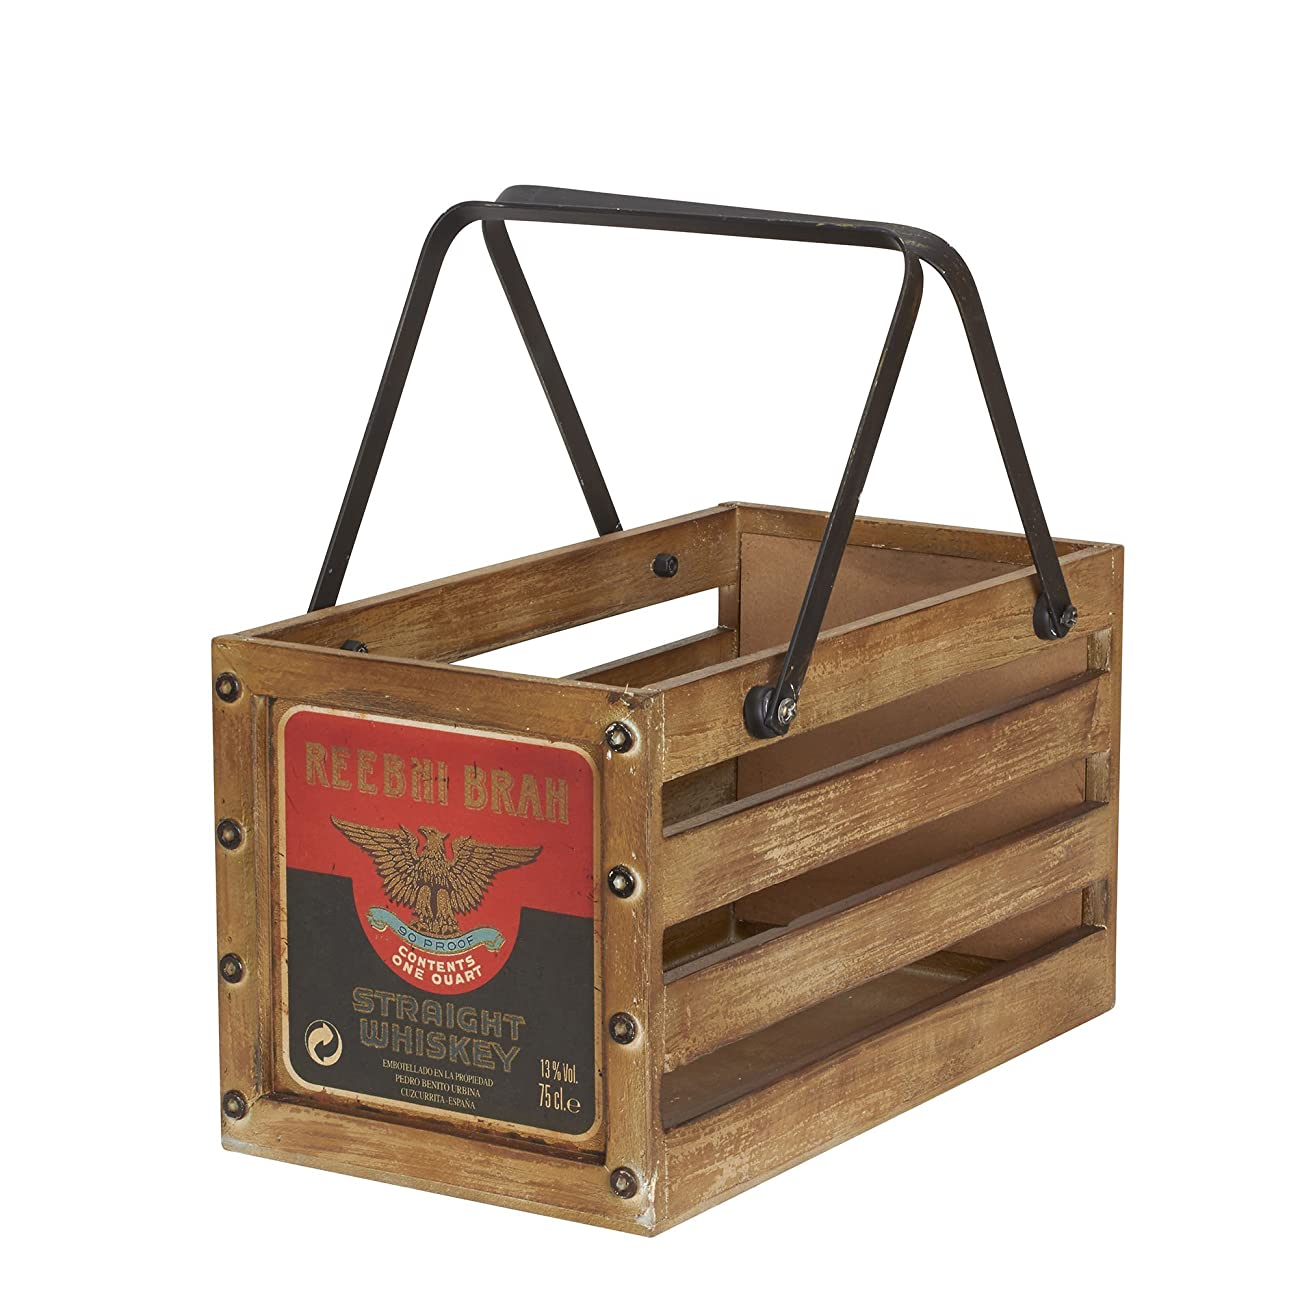 Household Essentials Whiskey Design Decorative Wood Crate for Storage, Small, Brown 0